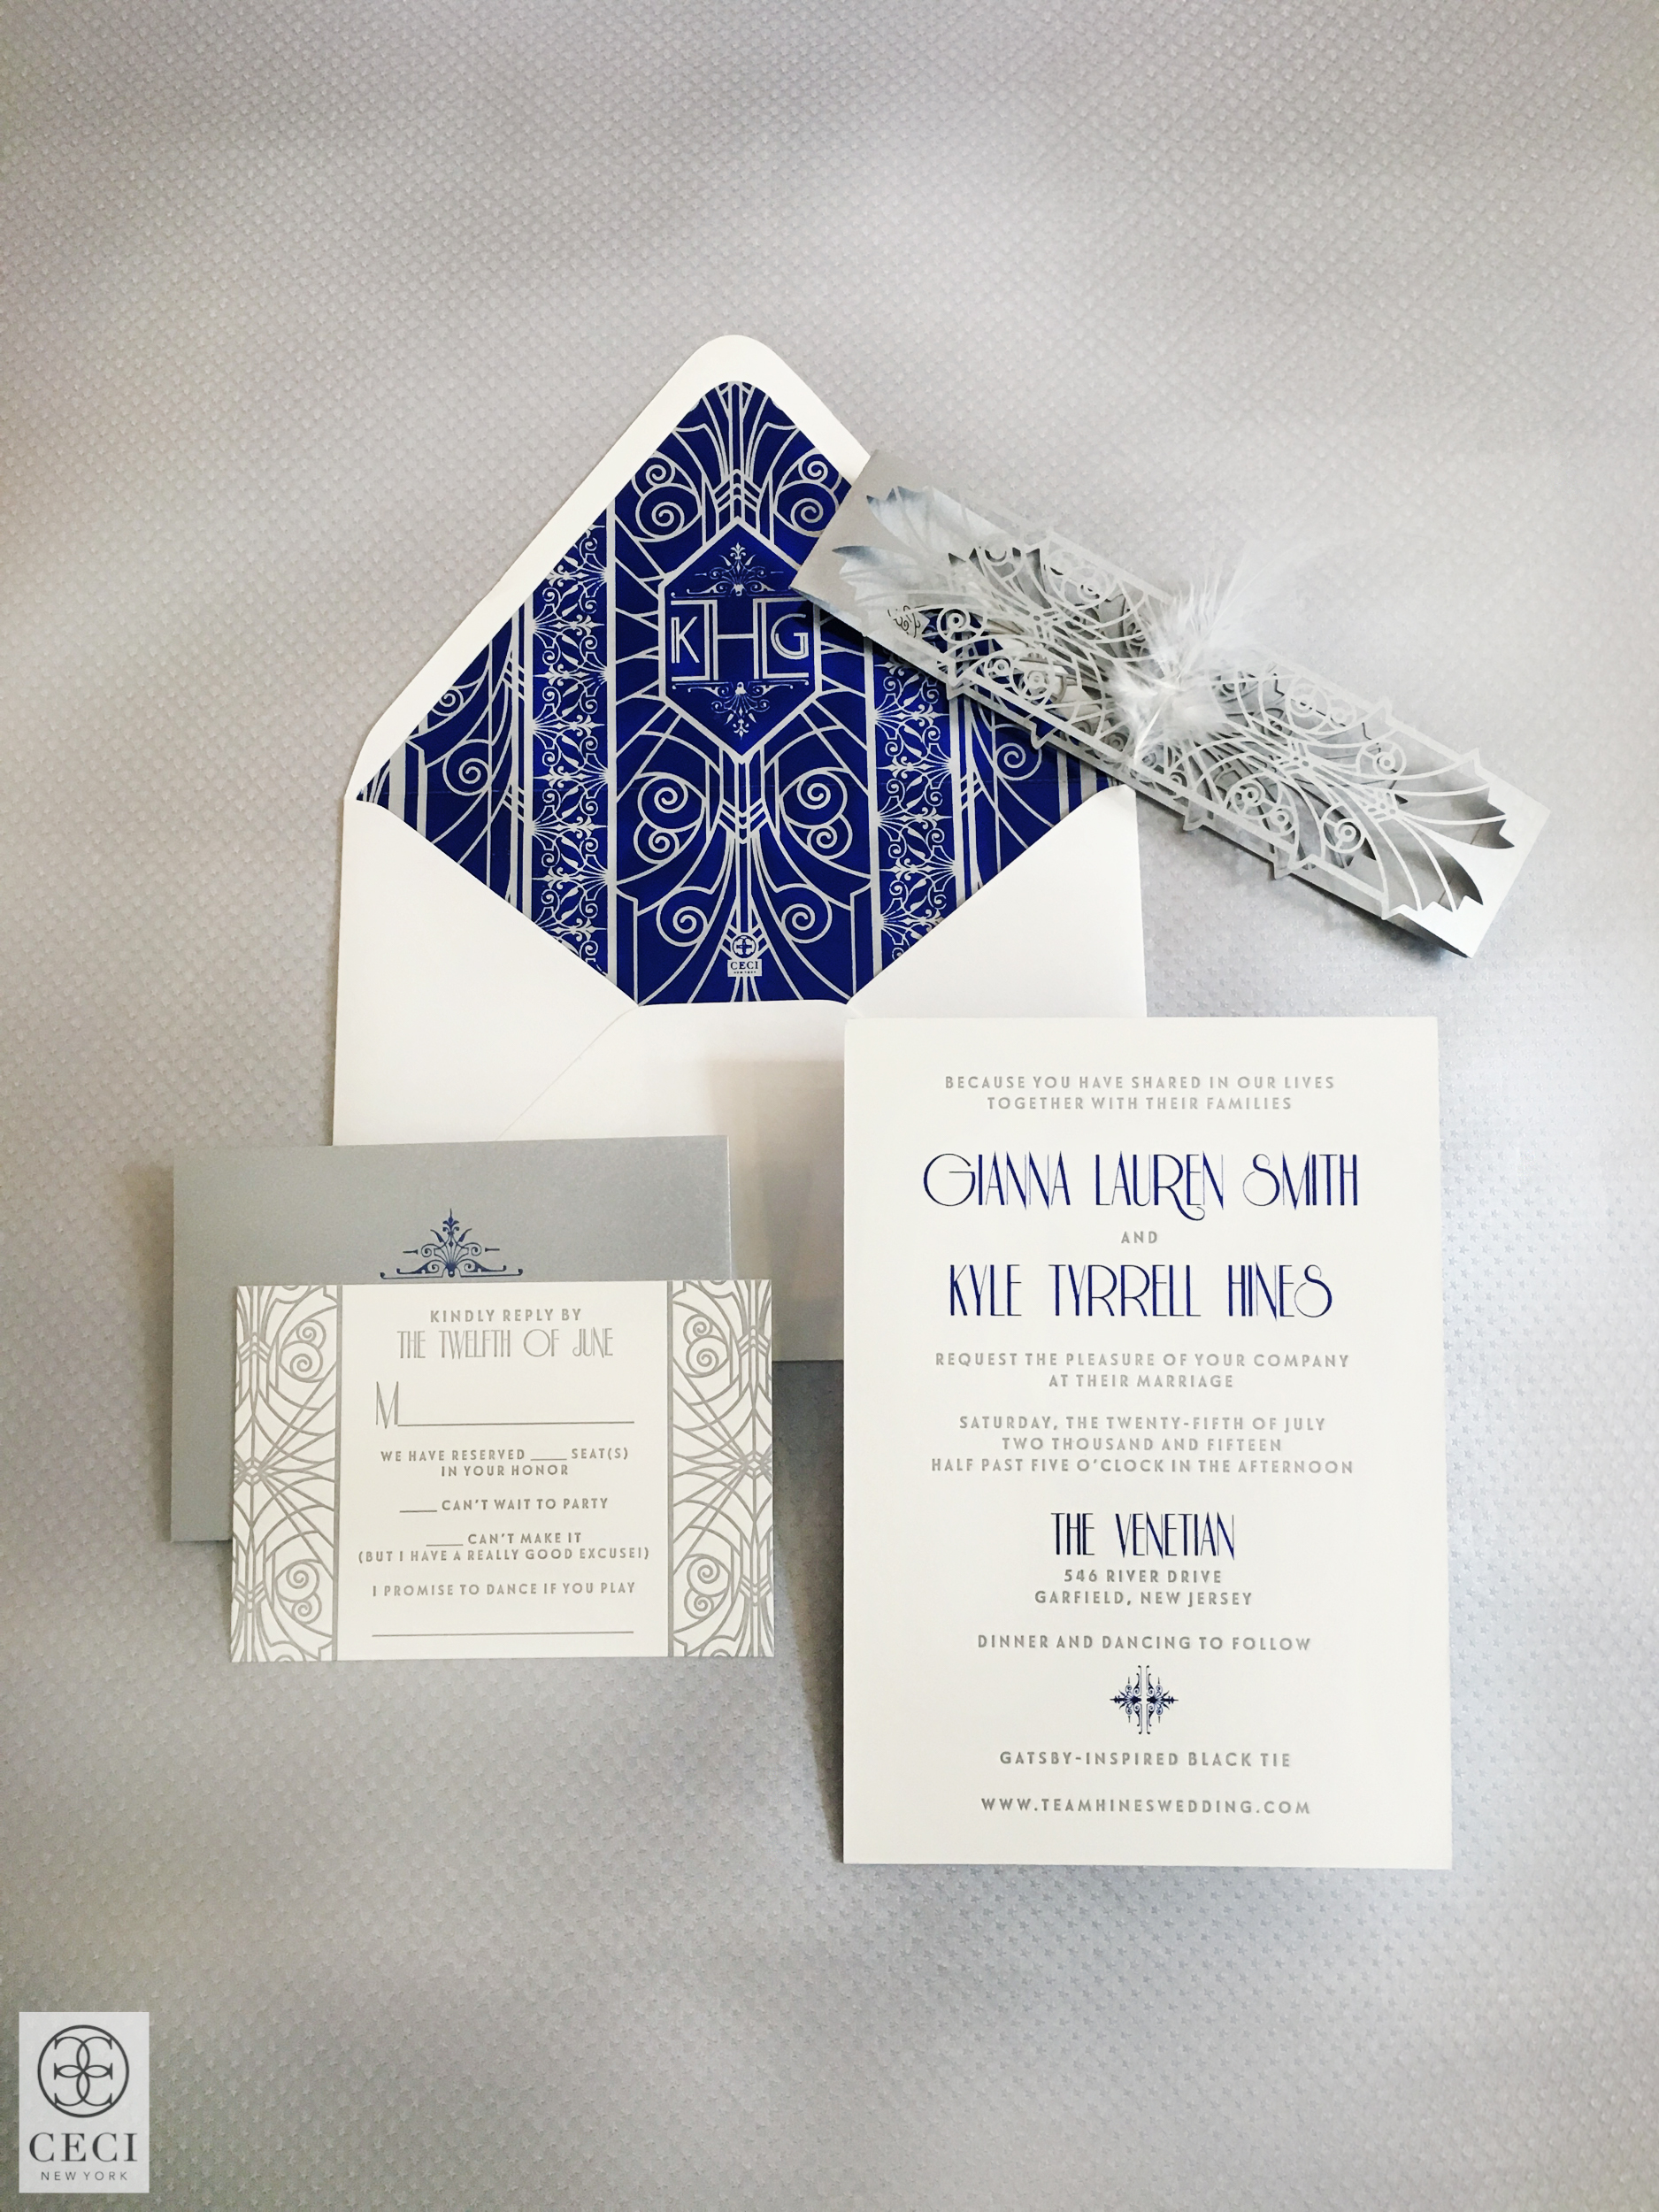 Ceci_New_York_New_Jersey_Invitations_Wedding_New_York_Elegance_Silver_Blue_Letterpress_Deco_Classic_Foil_Stamping_Custom_Couture_Personalized-17.jpg